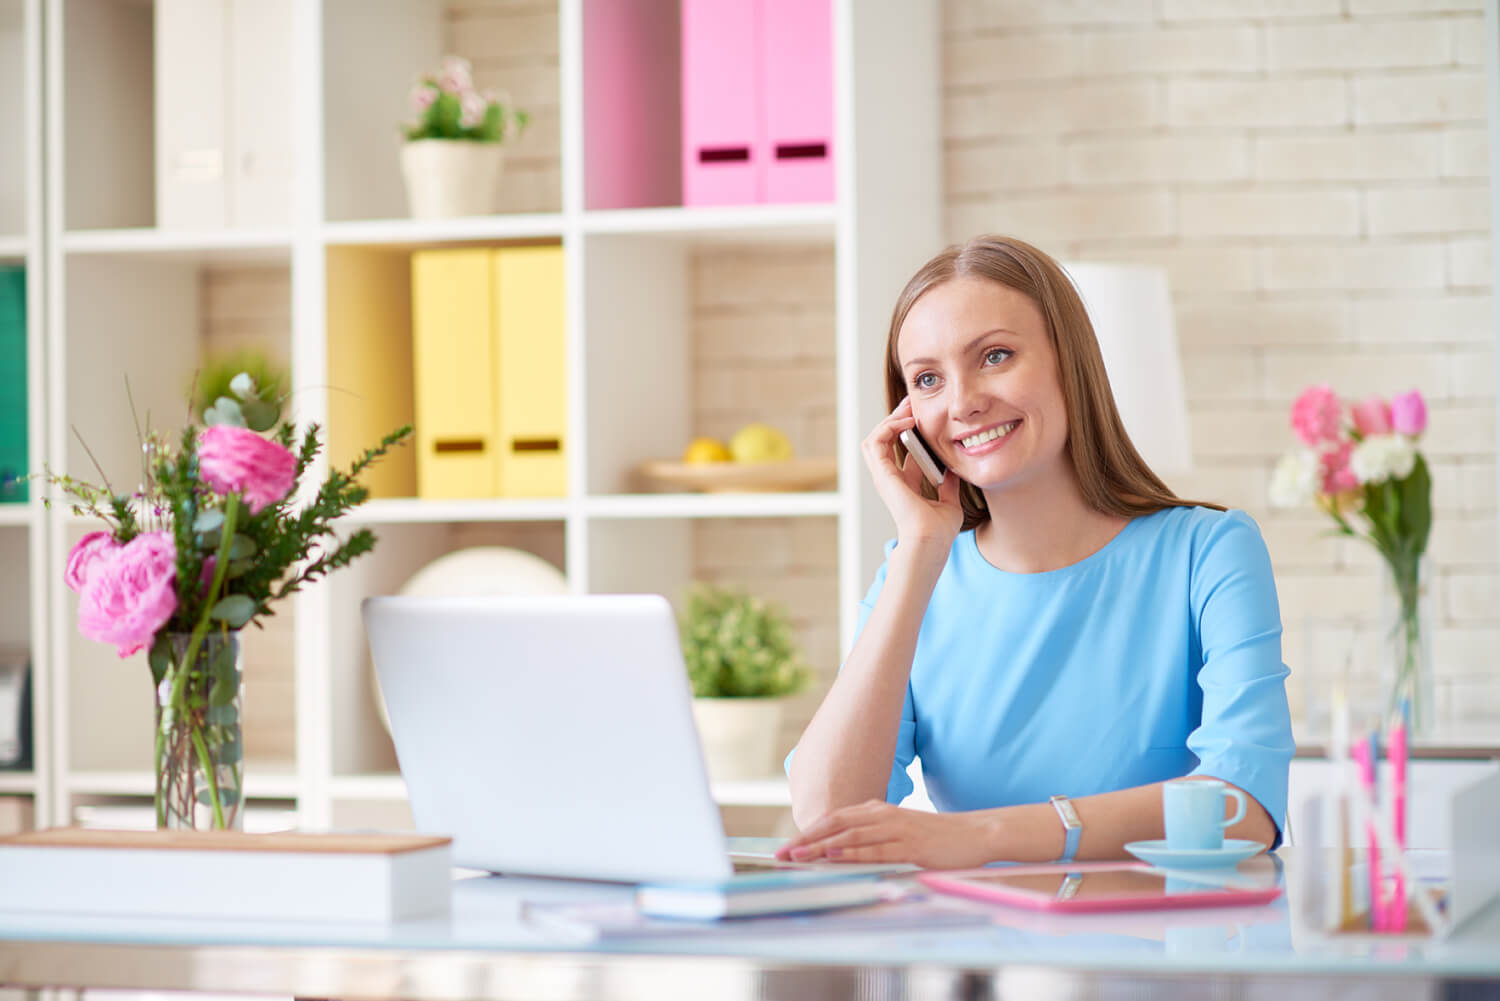 Spring into Action with Your Job Search